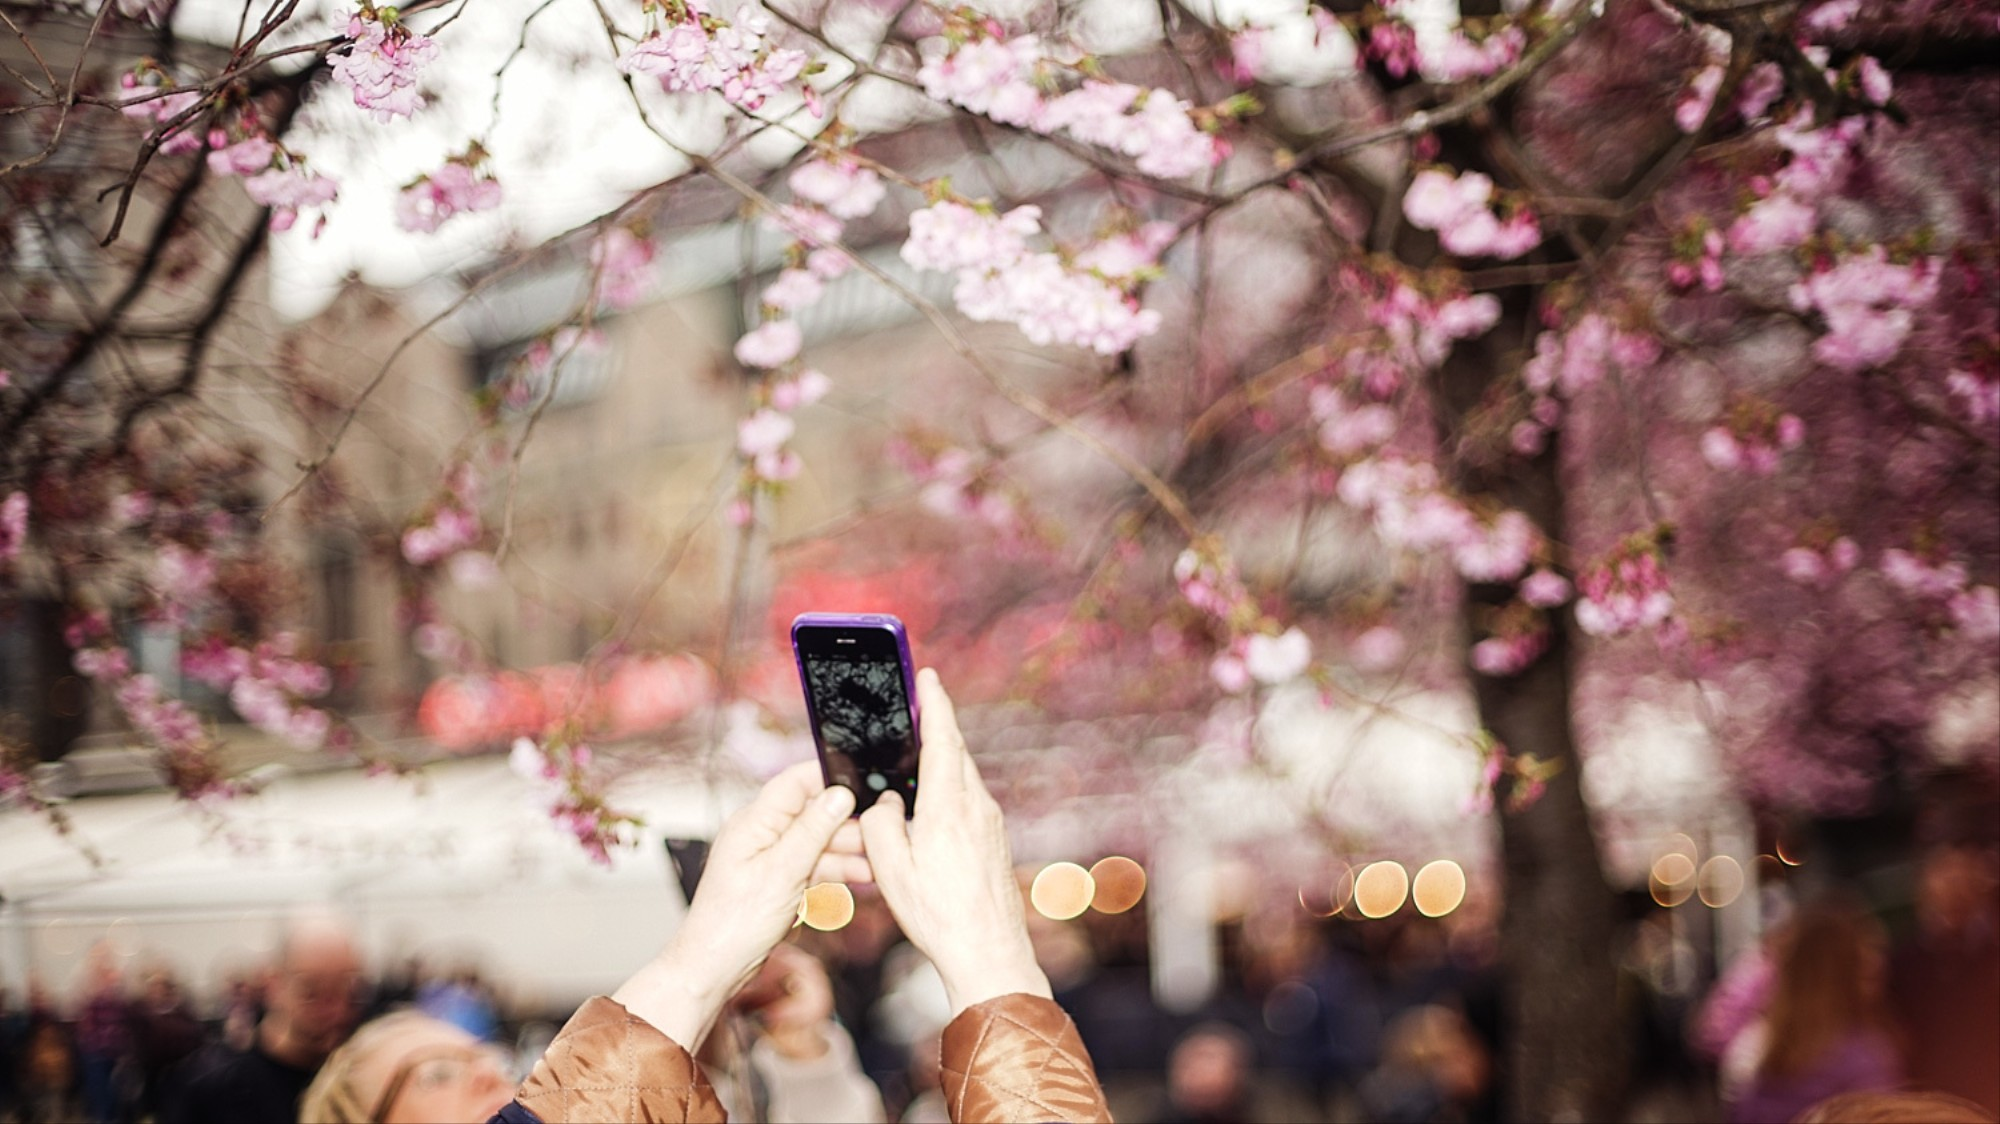 Photos of People Taking Photos of Cherry Blossom, VICE Magazine